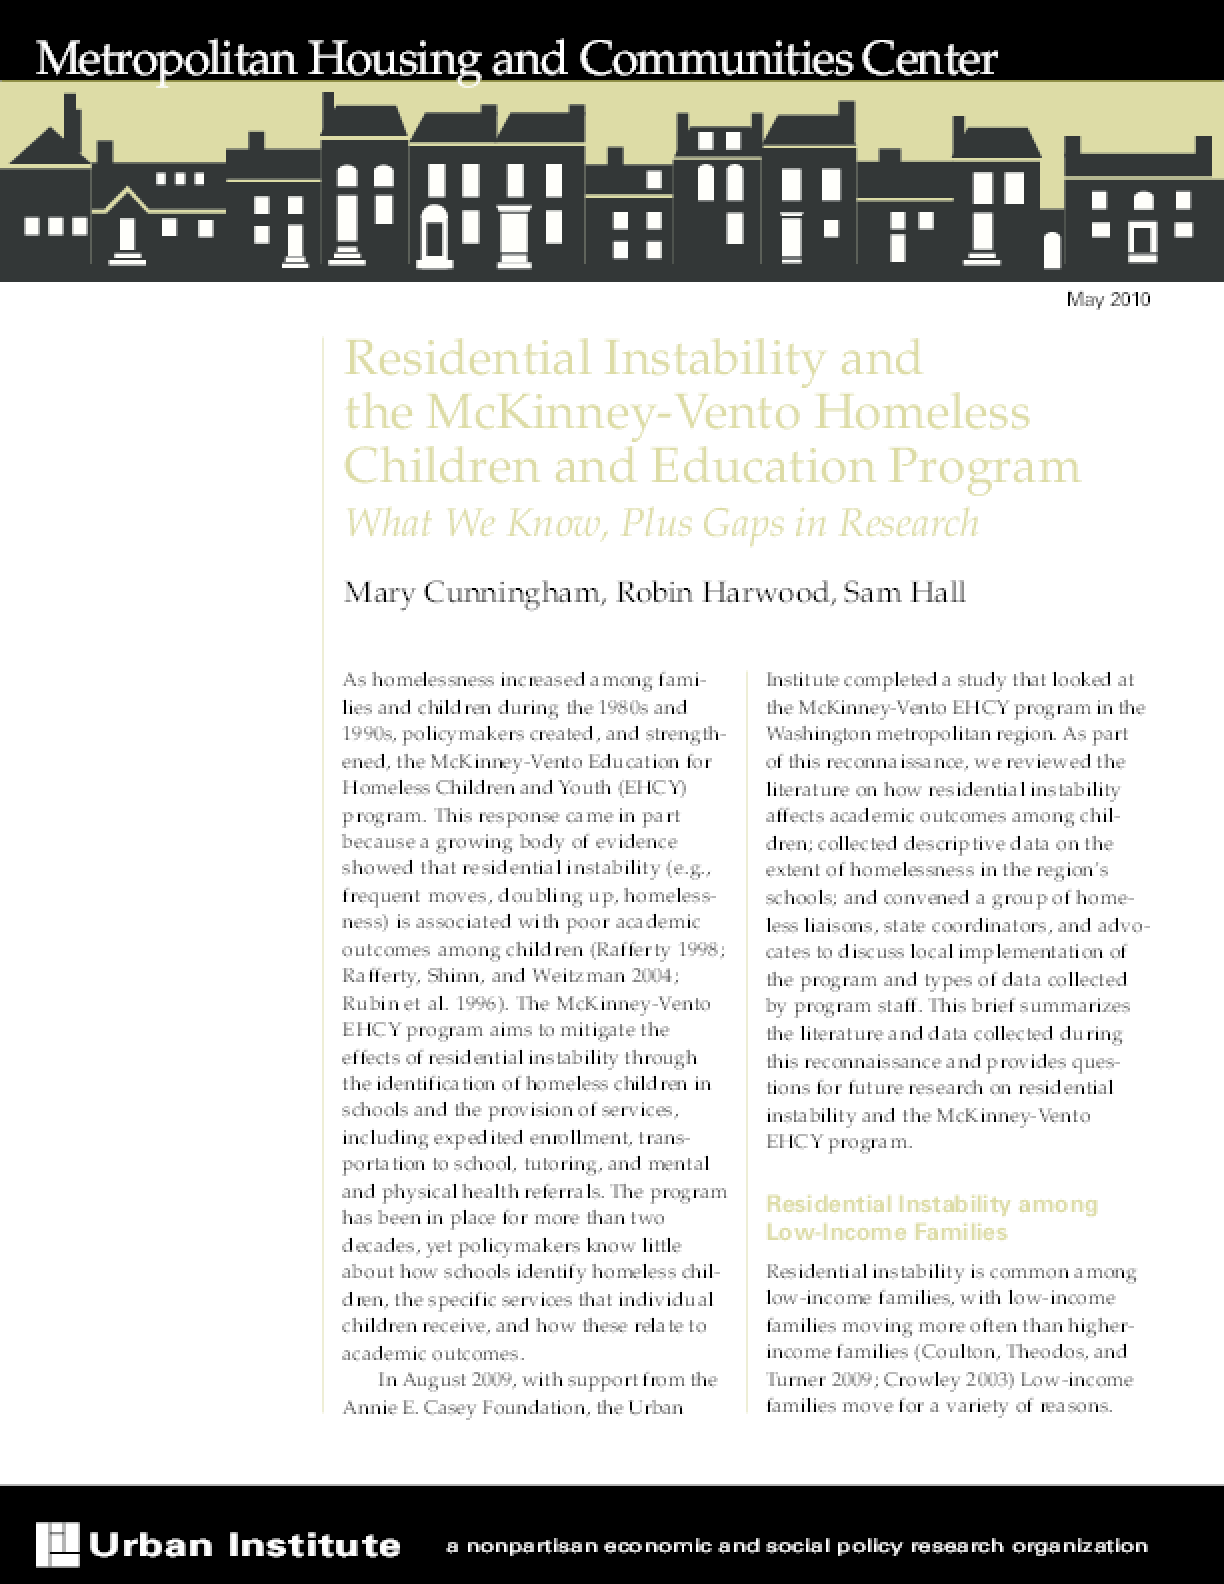 Residential Instability and the McKinney-Vento Homeless Children and Education Program: What We Know, Plus Gaps in Research